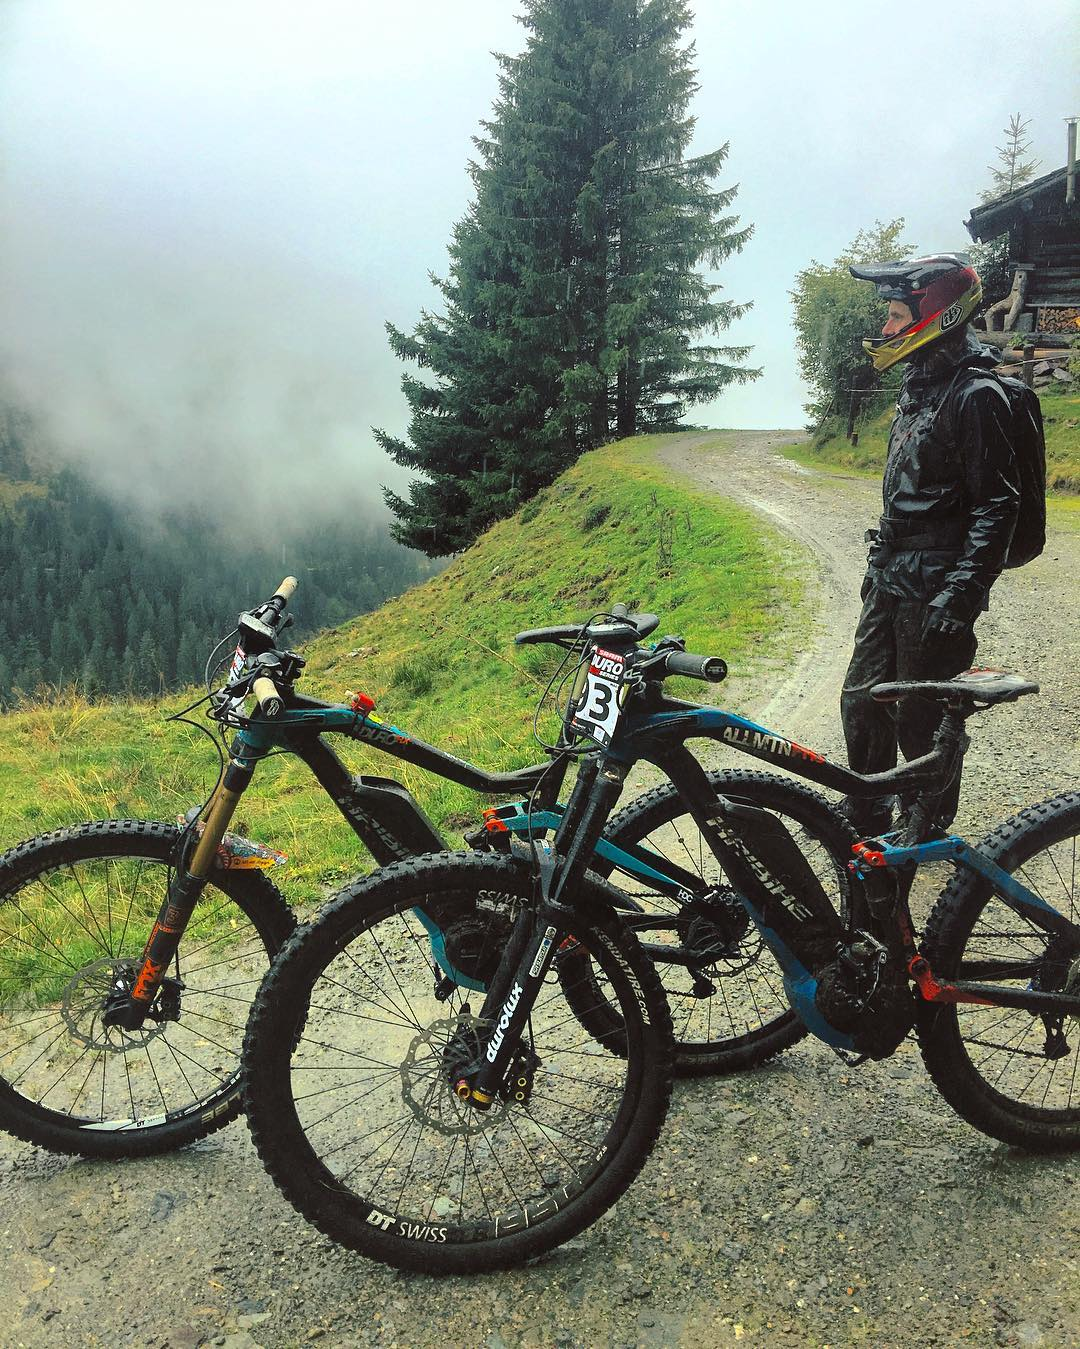 Gorillas in the mist! Have a great weekend! #haibike #xduro #emtb